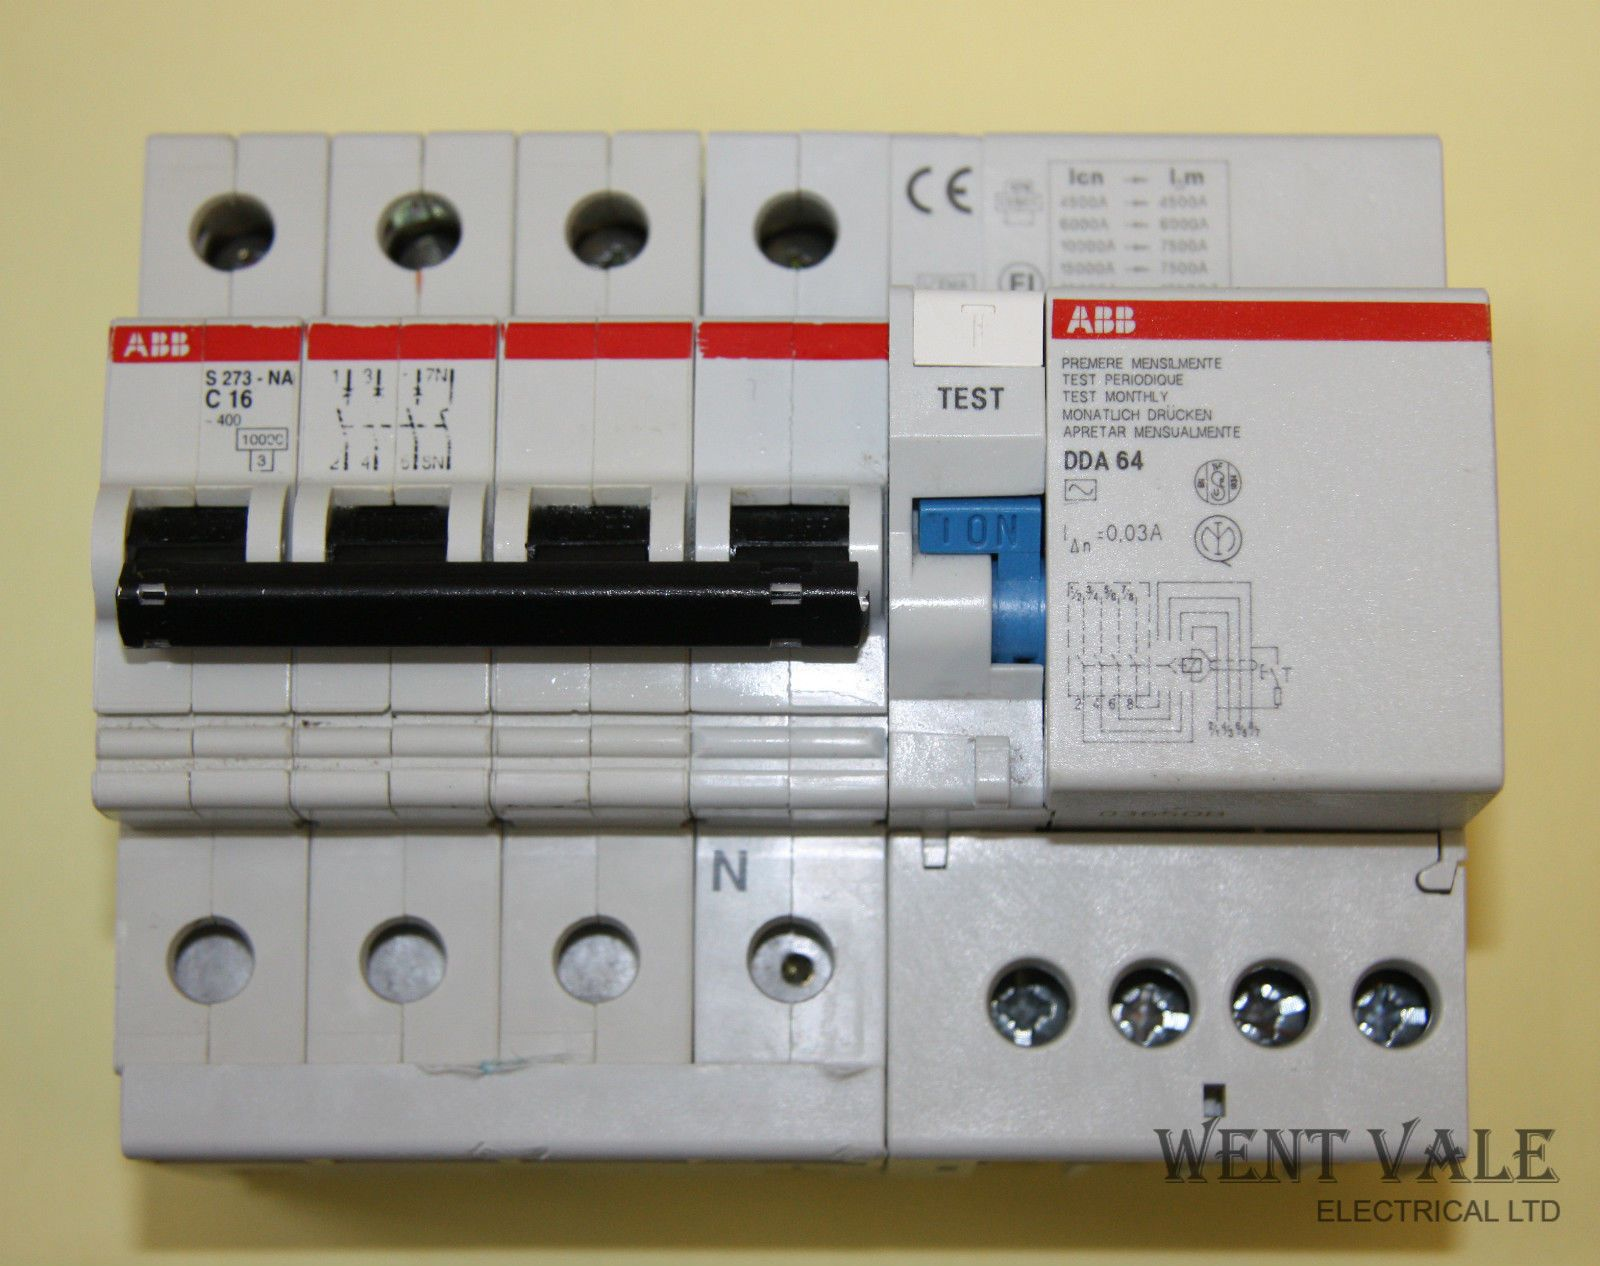 Telephone Wiring Block For Sale Manual Guide Diagram Abb S273 Na Dda 64 16a Type C 4 Pole Mcb 30ma 40a Four Rcd Used Wire 66 Punch Down